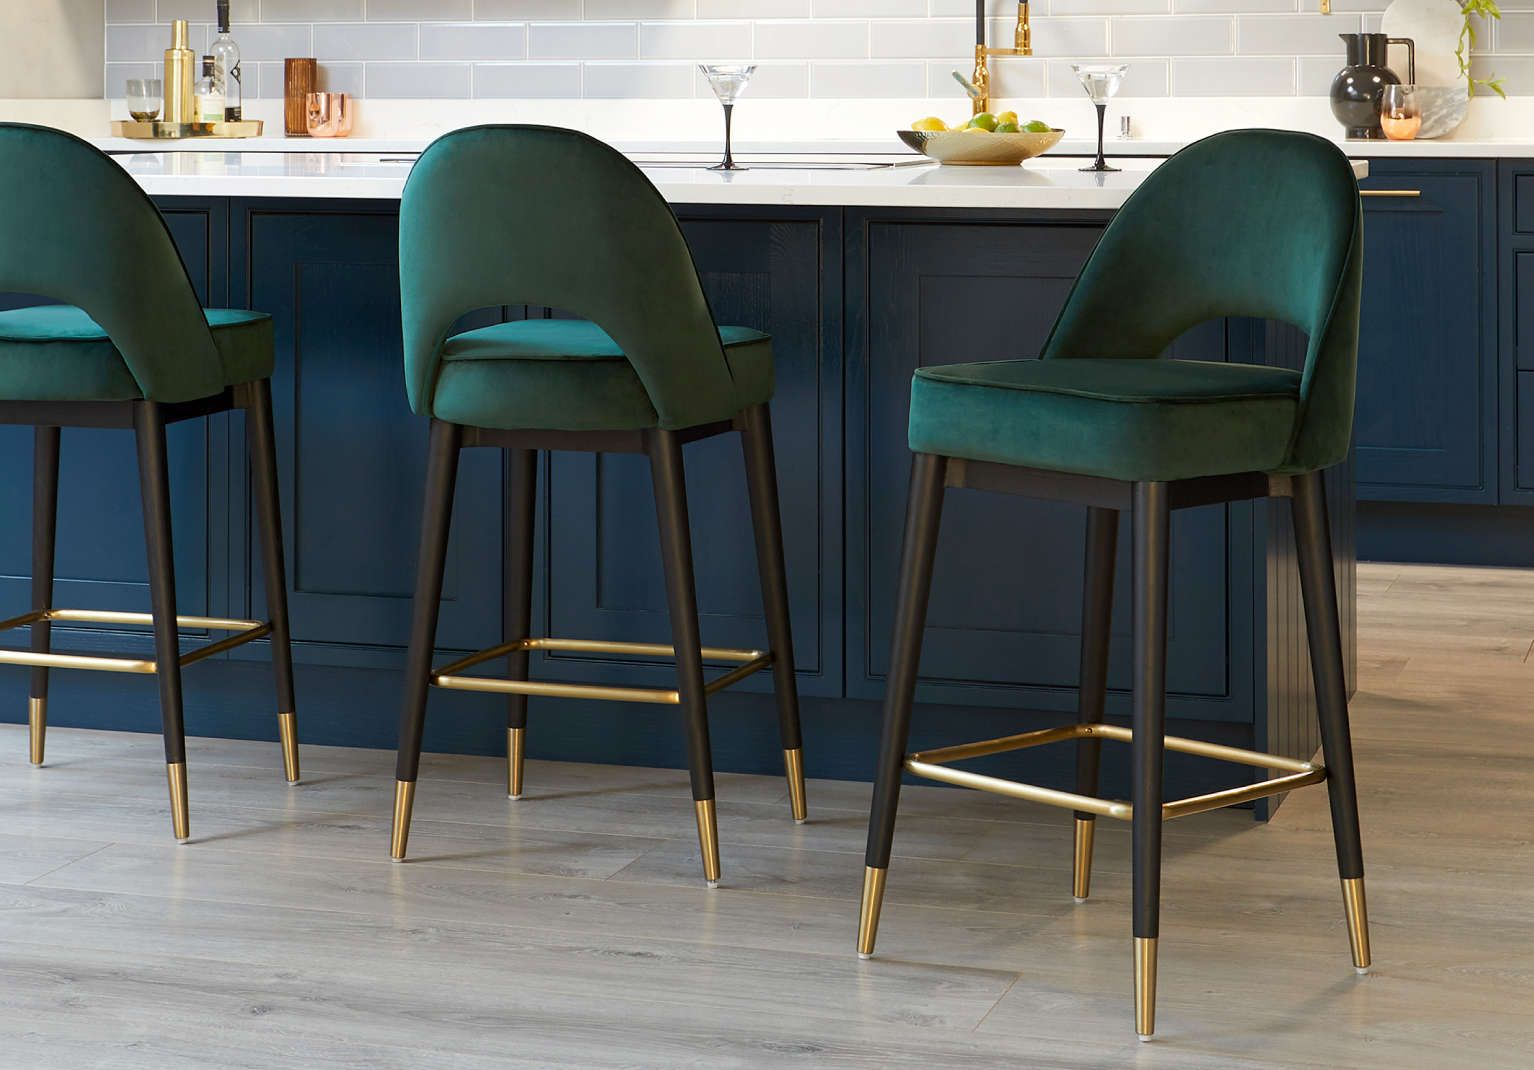 Discover Danetti S Contemporary Breakfast Bar Chairs For Your Home